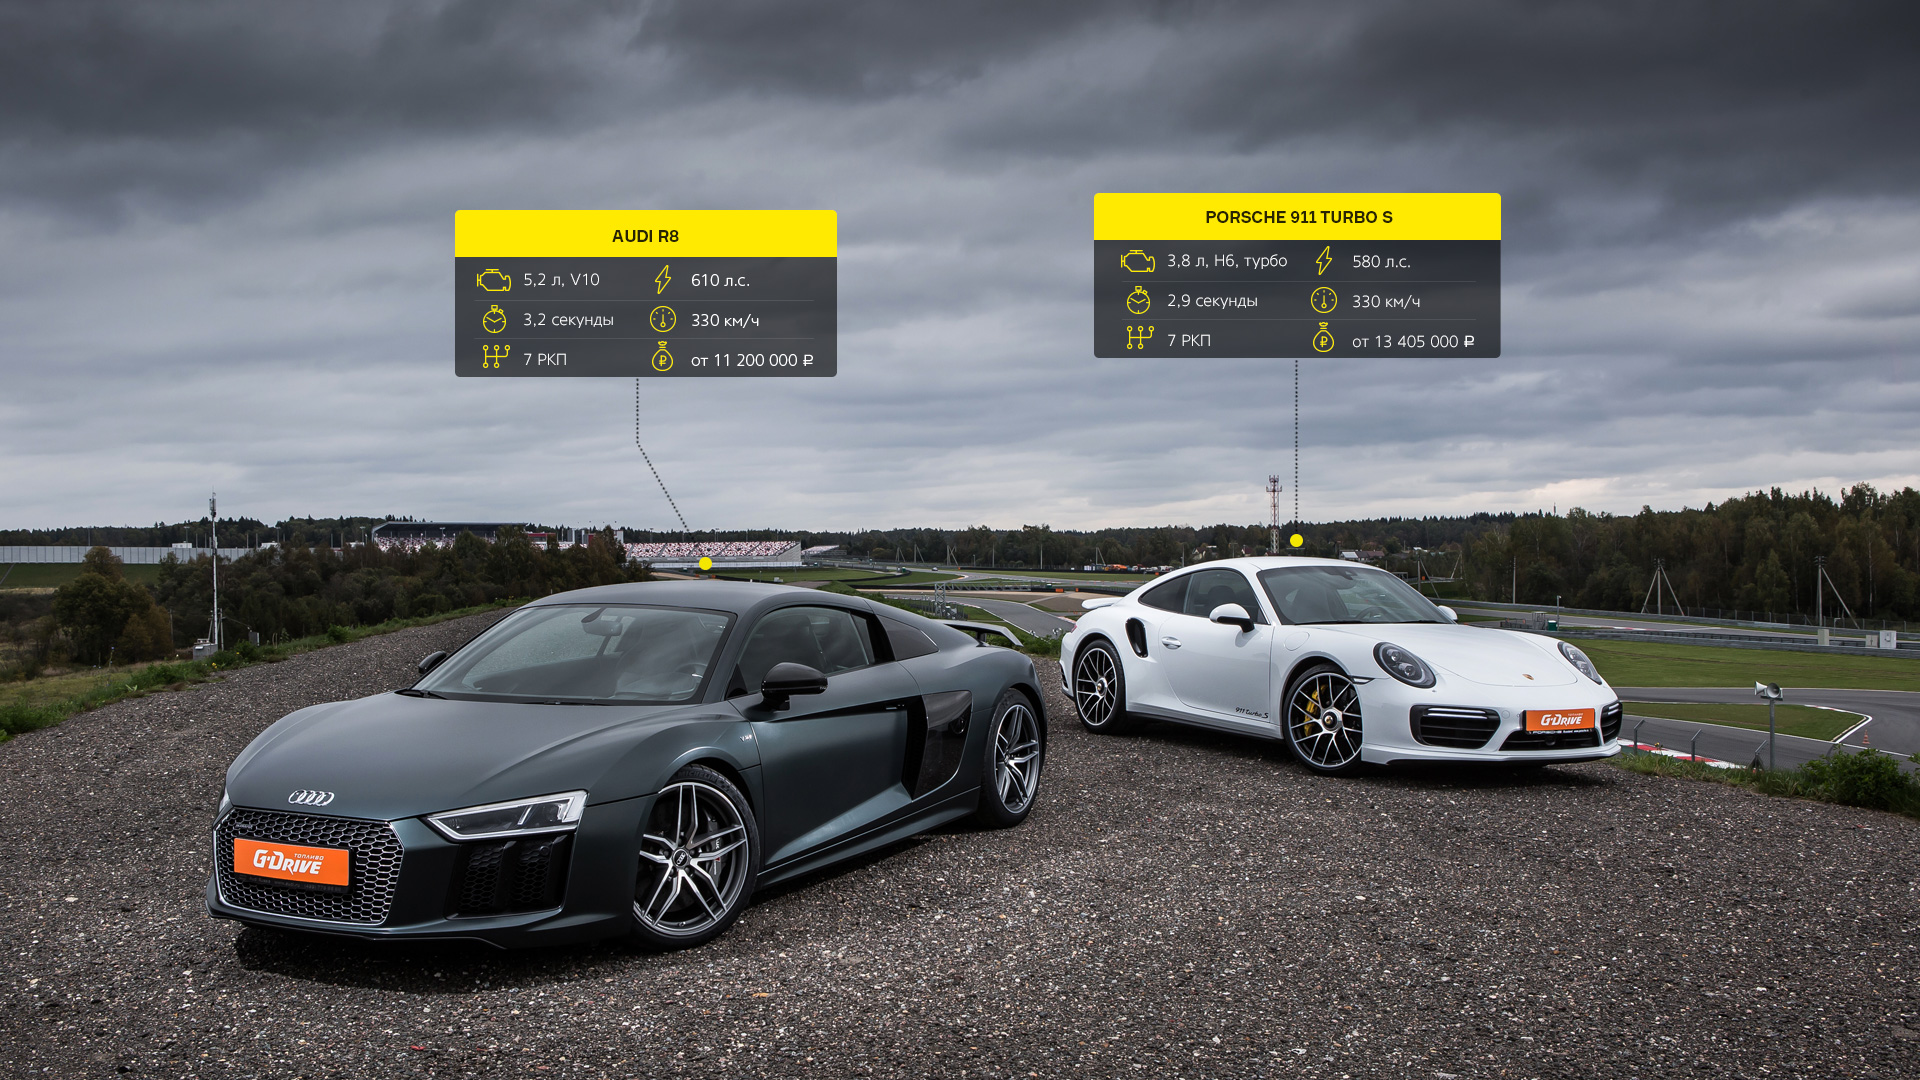 Битва года: Porsche 911 Turbo S vs Audi R8 V10 plus. Фото 9